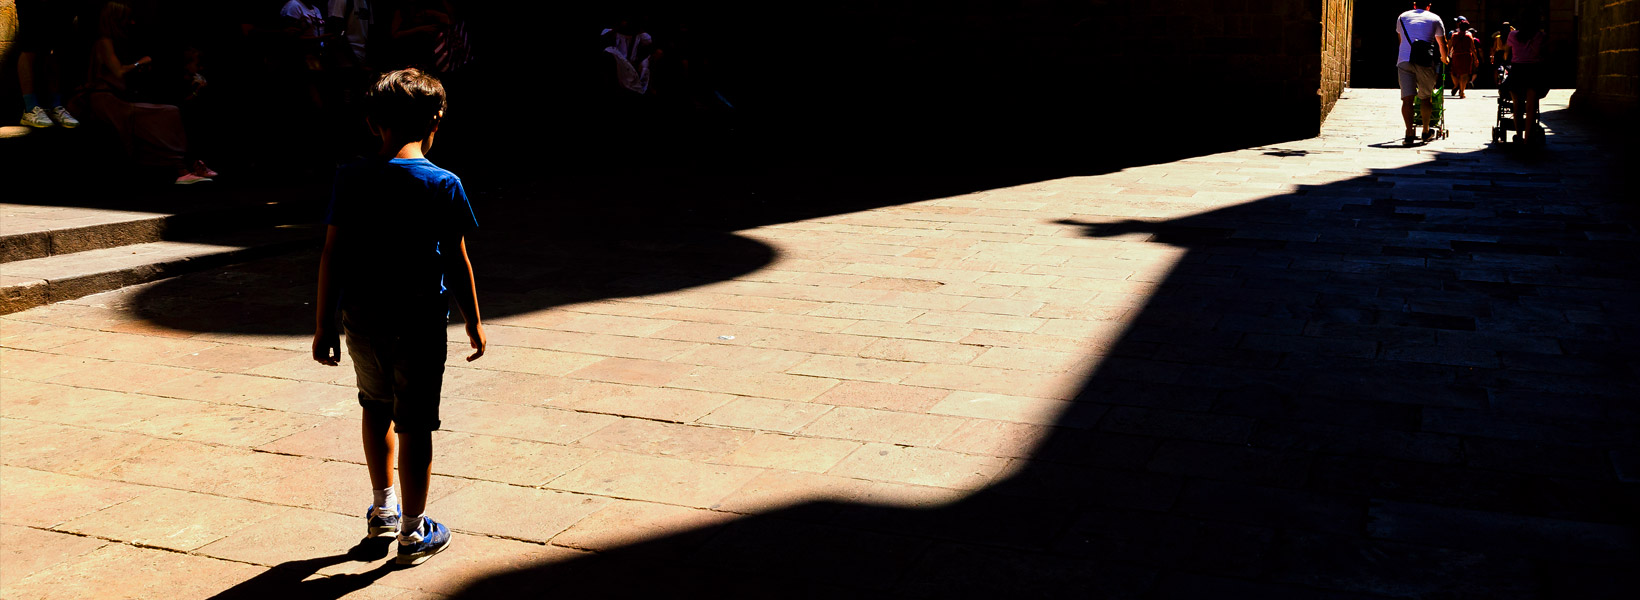 Photograph of a young boy walking in a patch of light in Barcelona's Gothic Quarter